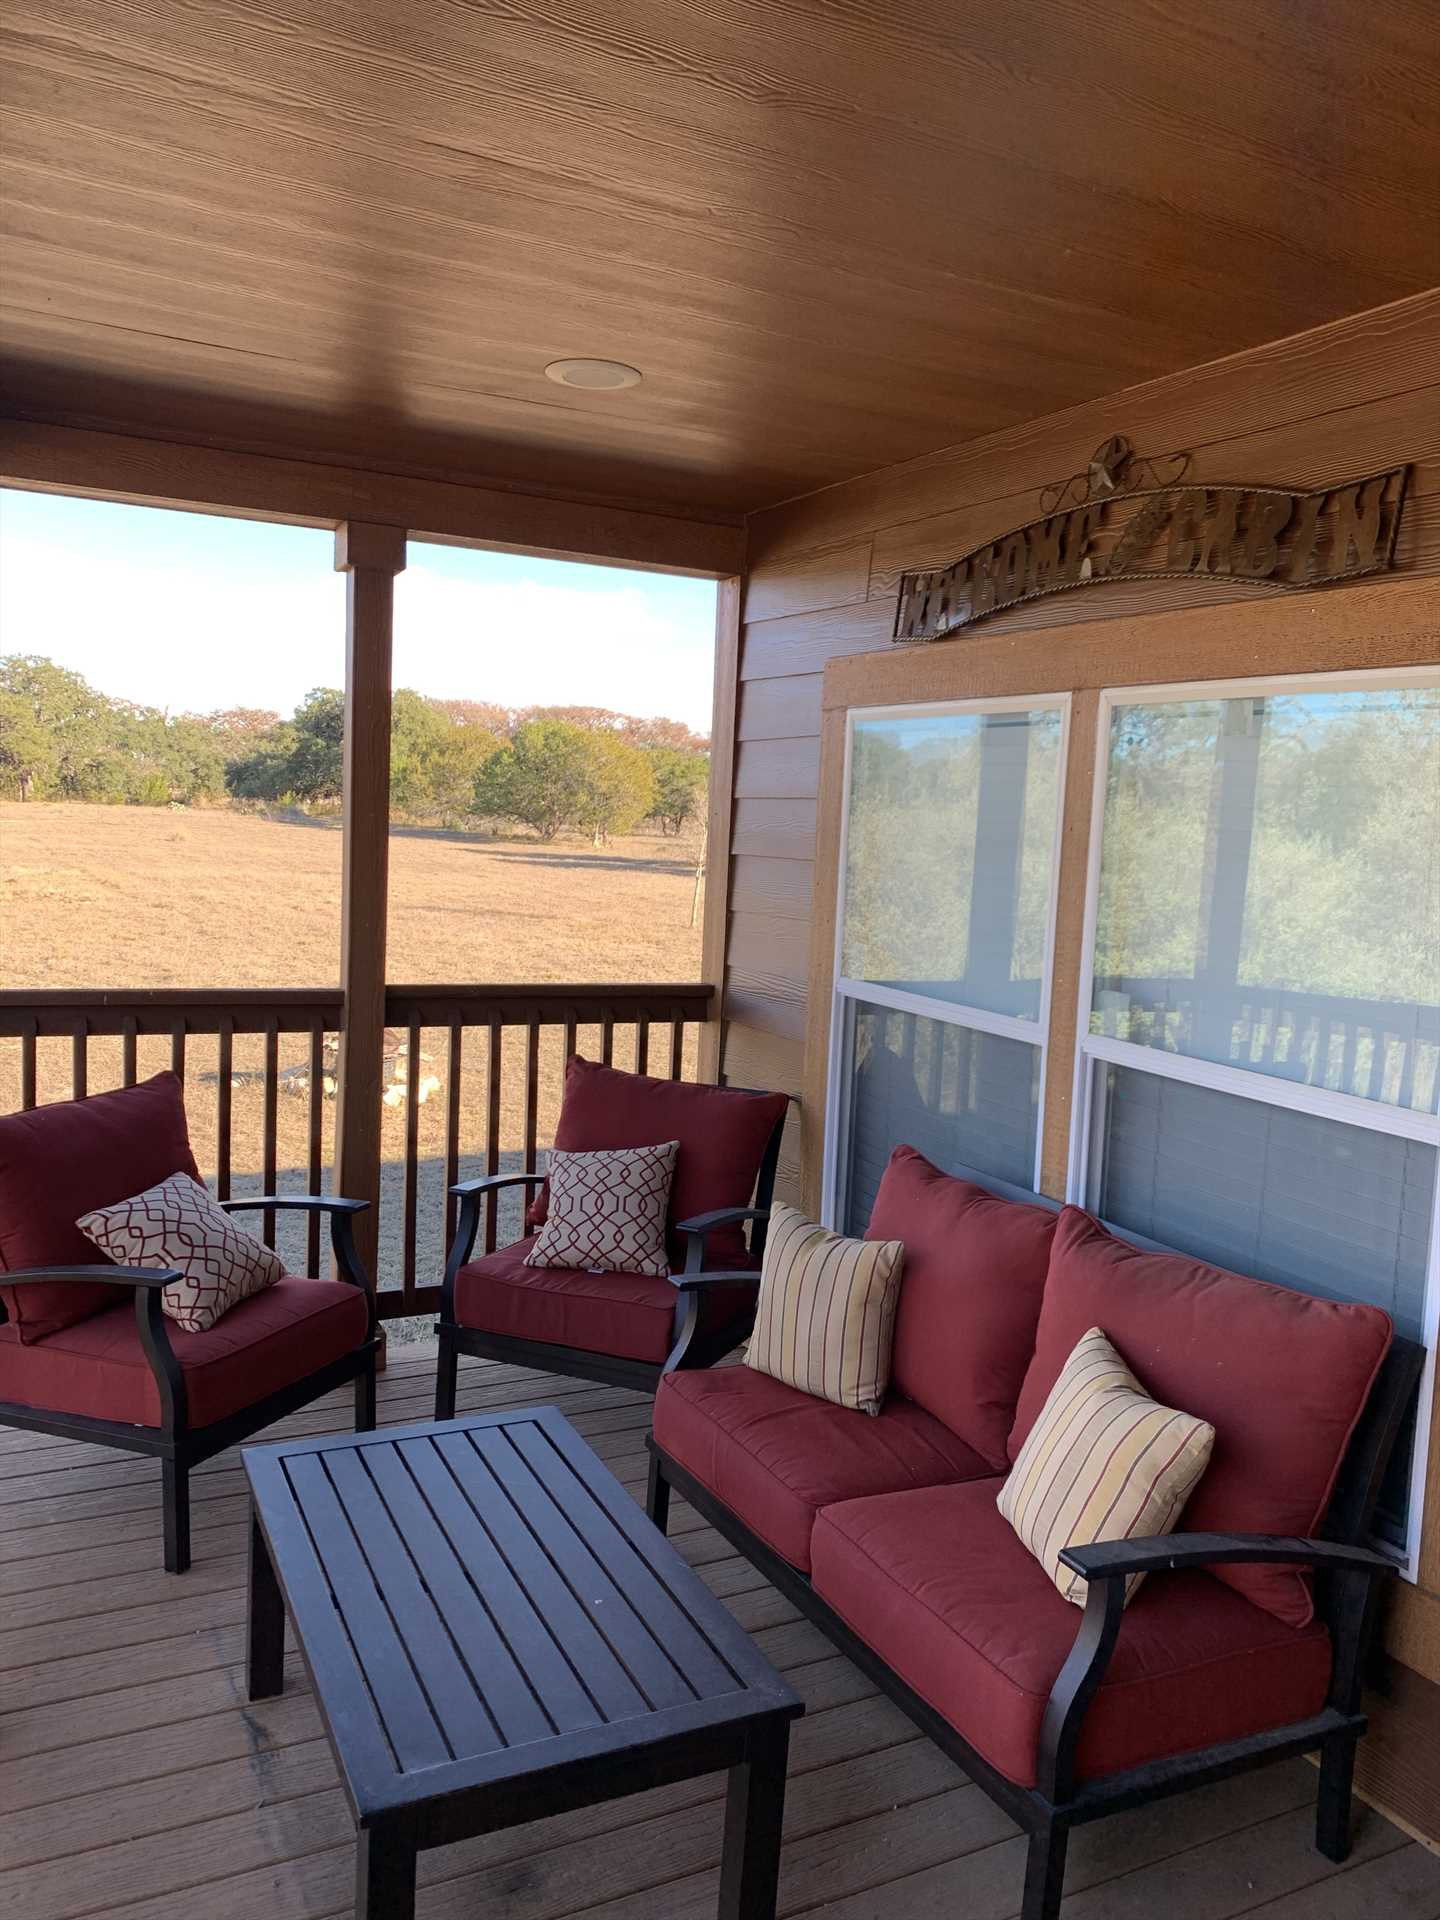 With plush deck furniture, a fire pit, and a grill, you'll feel just as pampered outside the Hideaway as you do indoors!